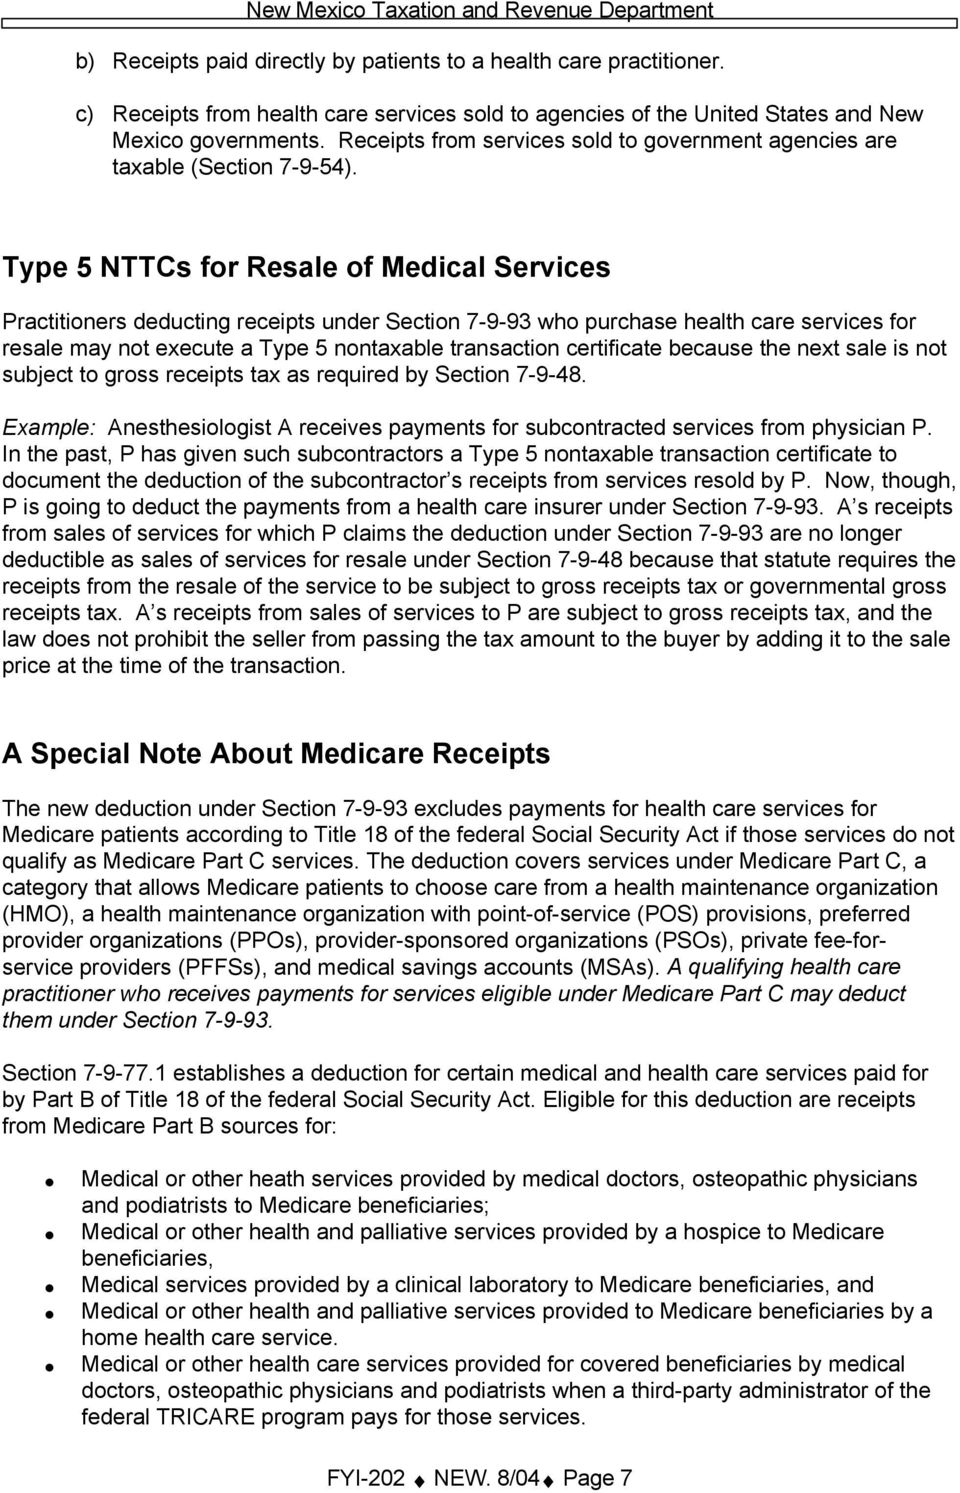 Type 5 NTTCs for Resale of Medical Services Practitioners deducting receipts under Section 7-9-93 who purchase health care services for resale may not execute a Type 5 nontaxable transaction